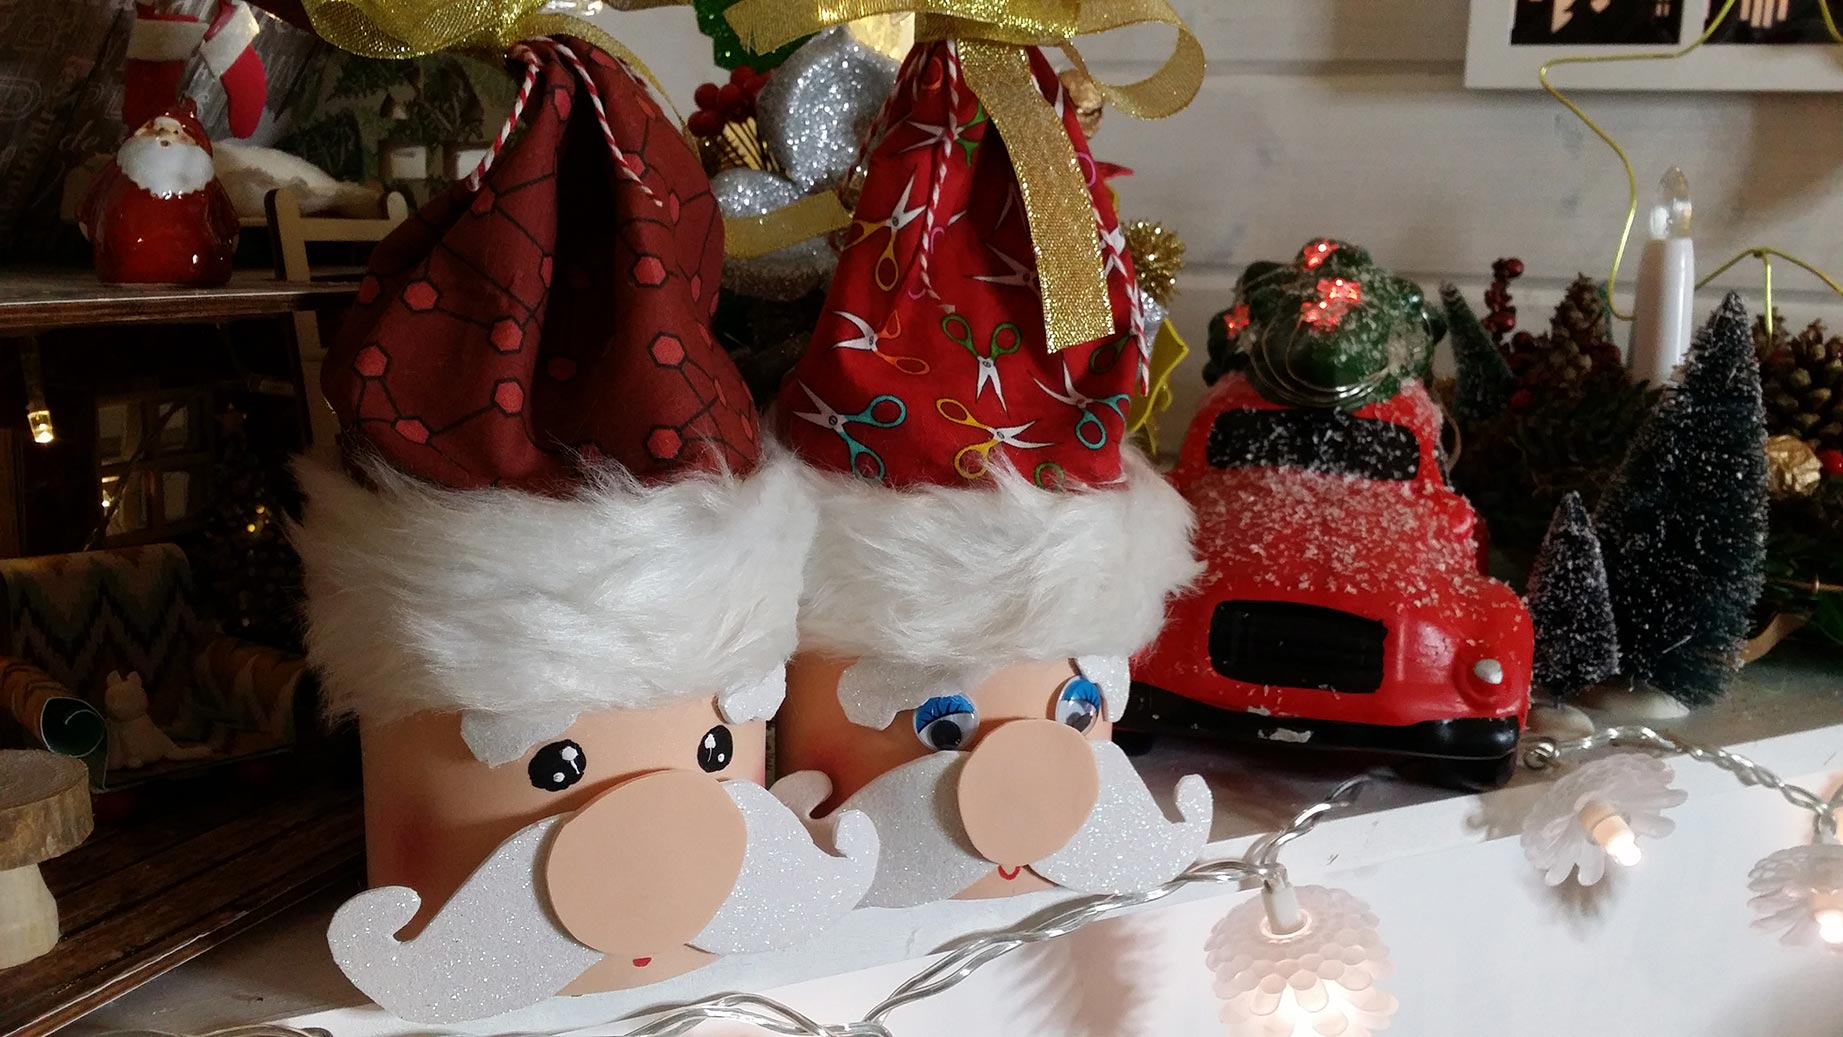 fabriquer-le-pere-noel-recyclage-materiaux-carton-mousse-tissu-transformer-boite-friandise-a-offrir-creation